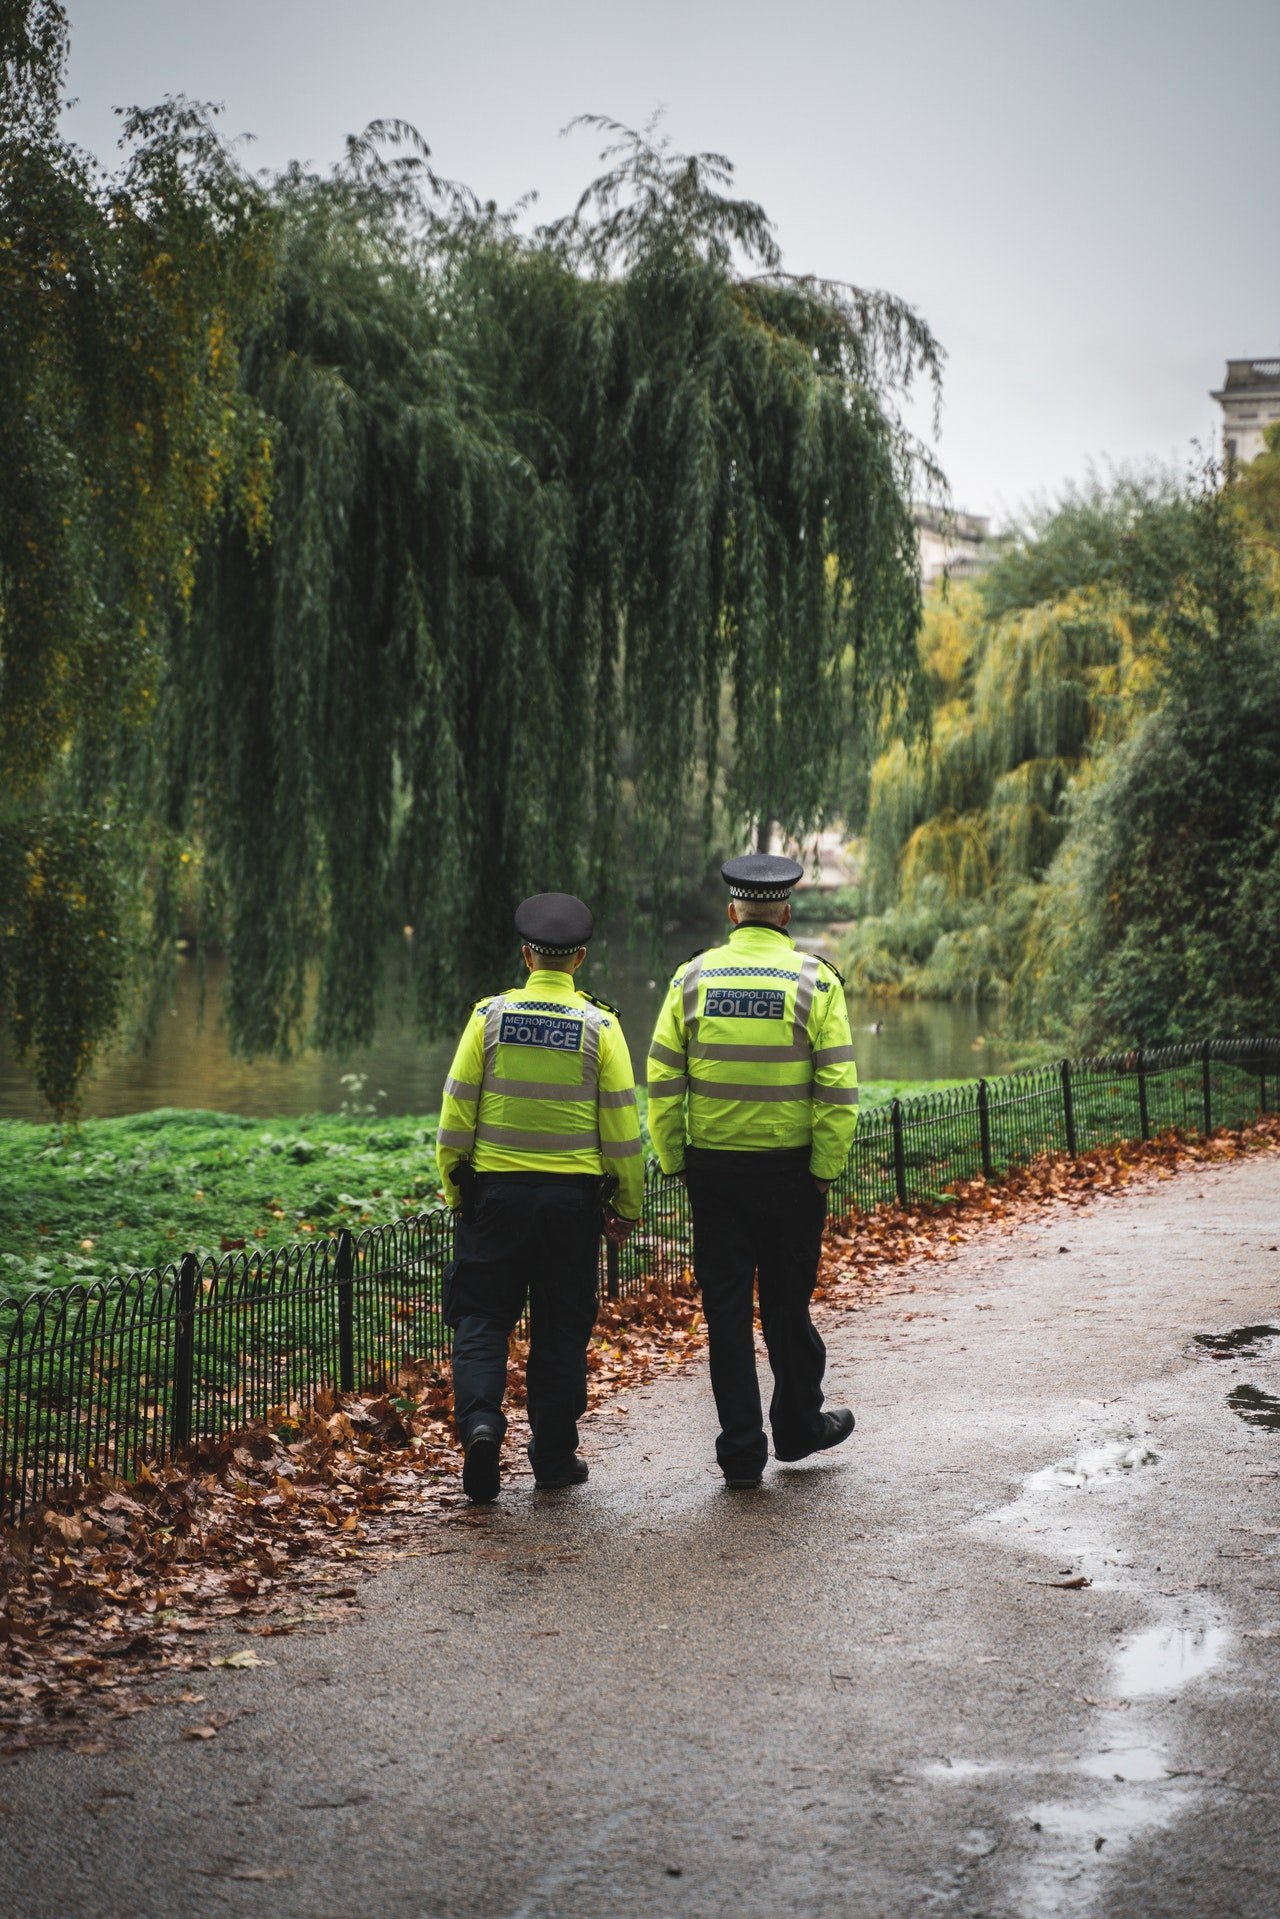 Photo of two police officers walking down the road | Photo: Pexels